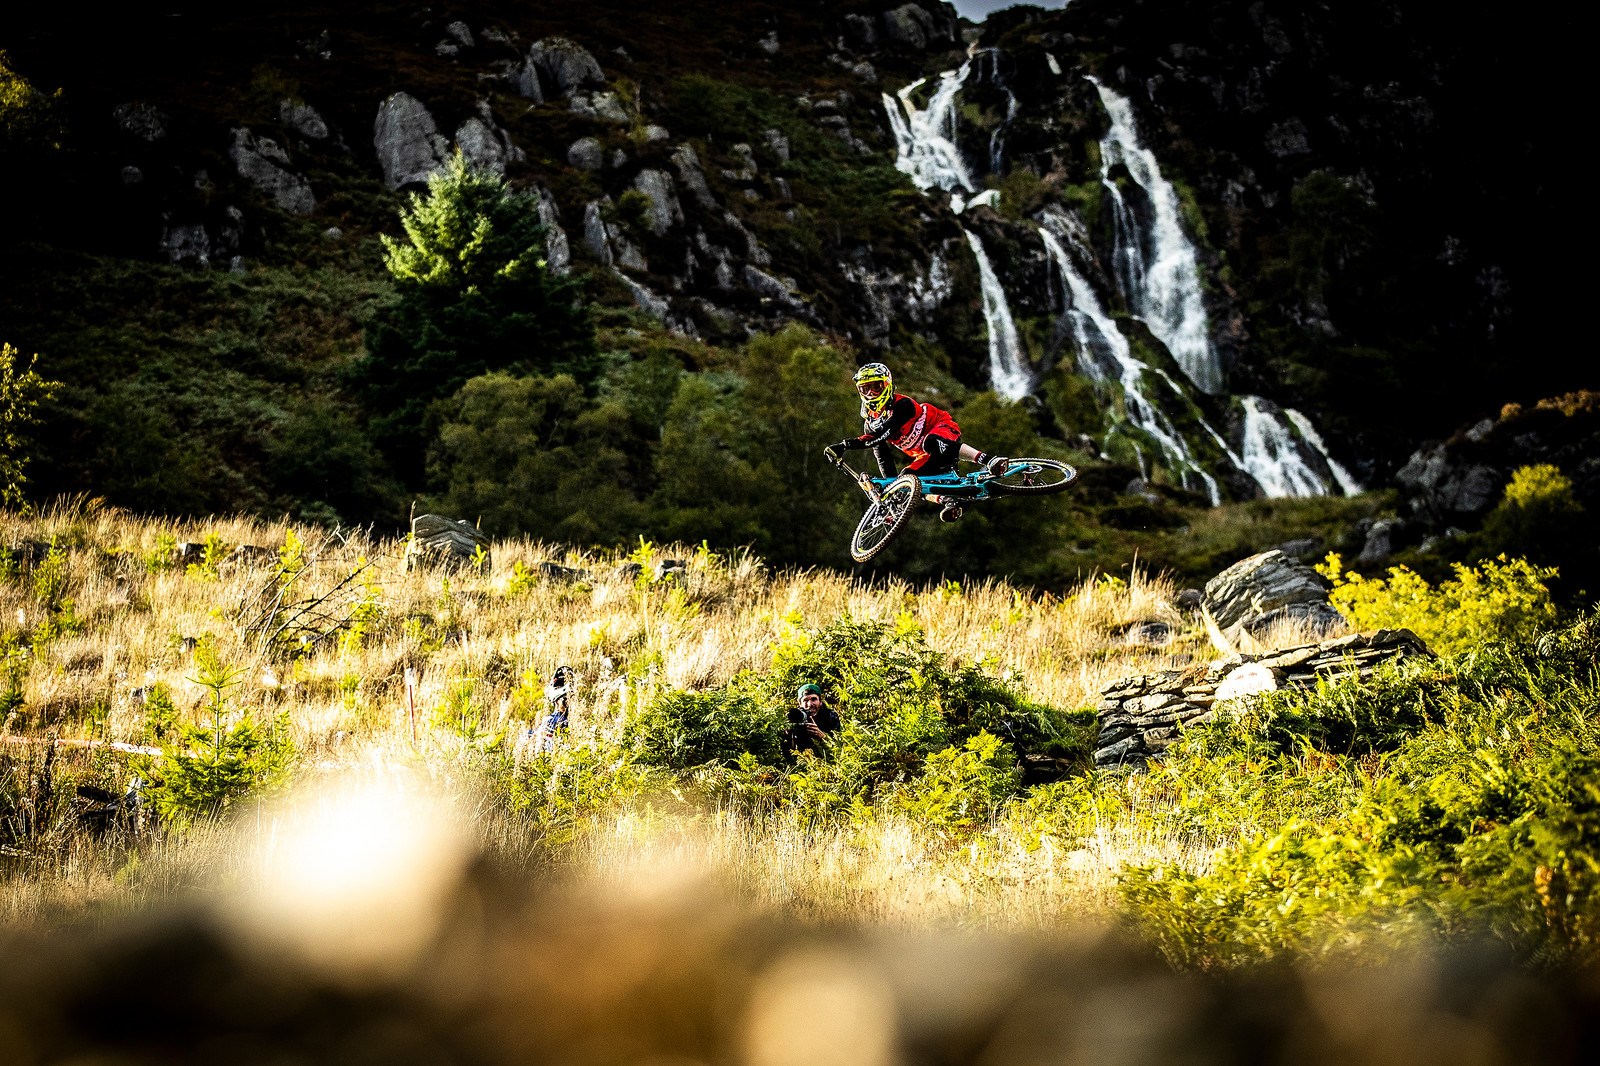 Bernie Senders - BIG AIR PHOTO BLAST - RED BULL HARDLINE - Mountain Biking Pictures - Vital MTB